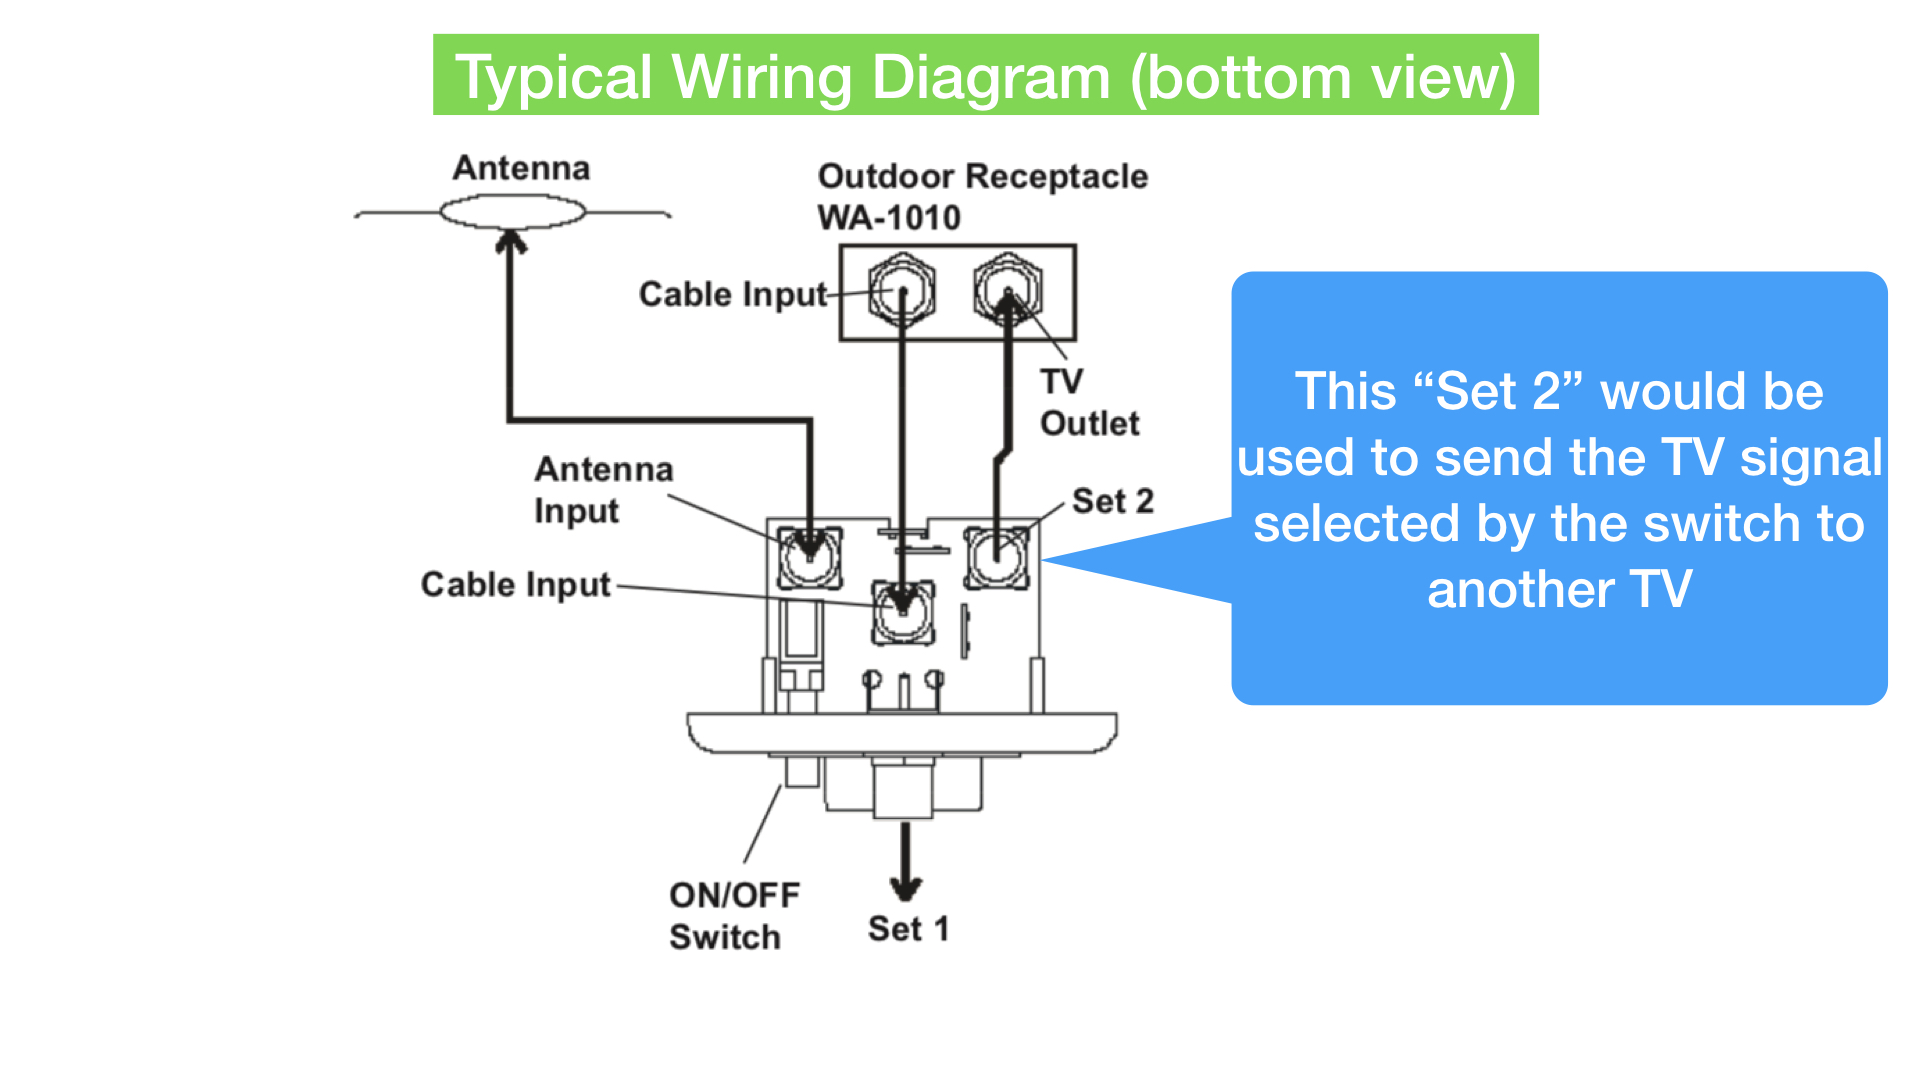 typical auto wiring diagram rv antenna and cable switch typical rv wiring diagram